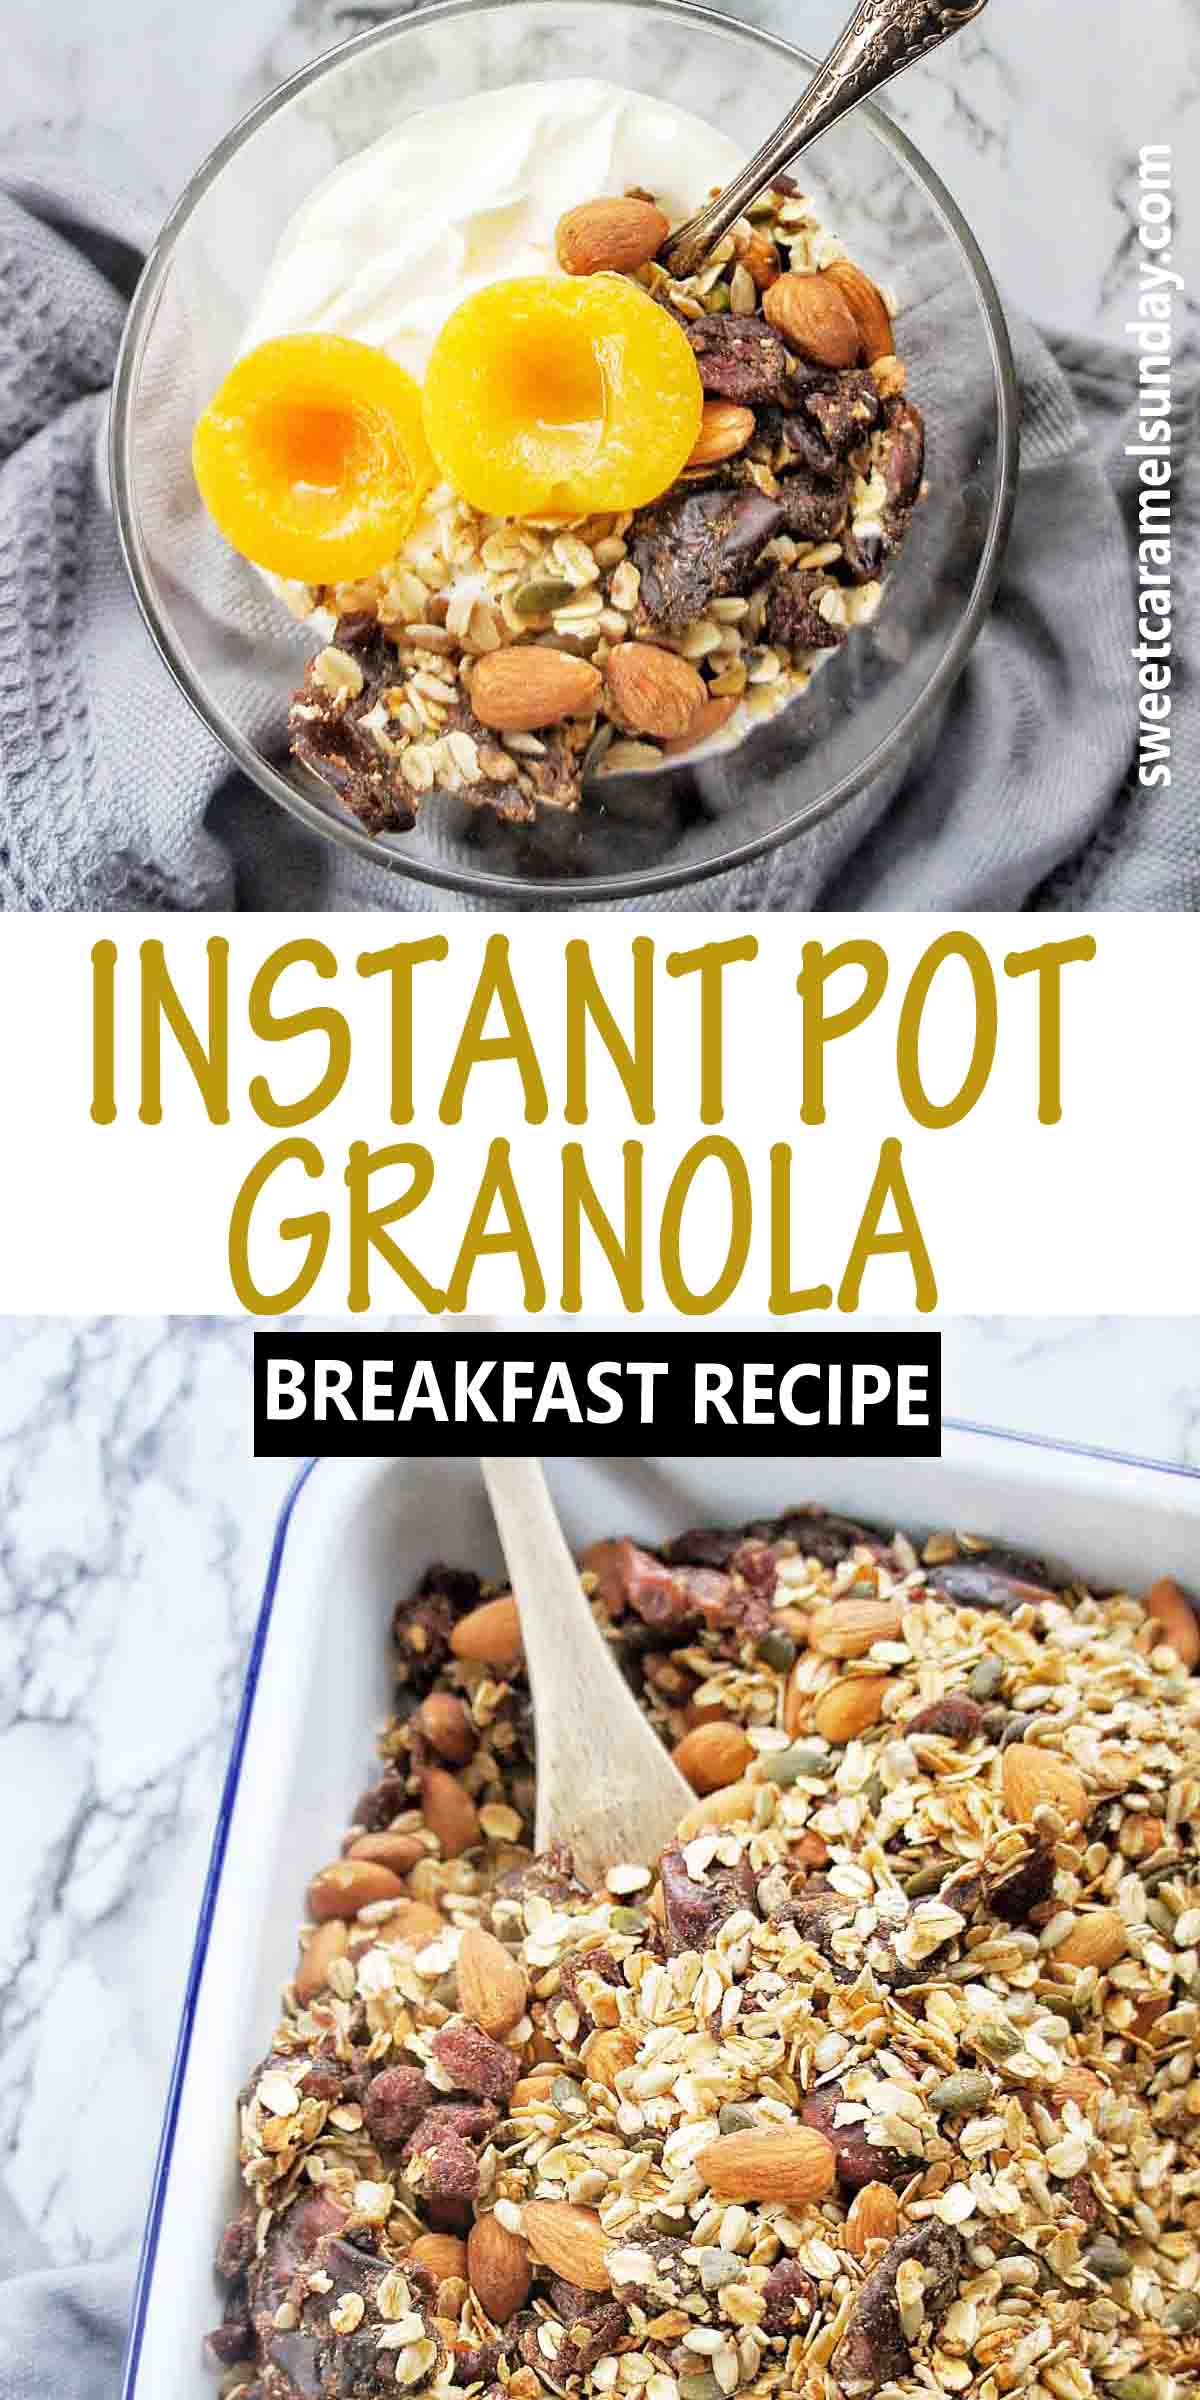 Instant Pot Granola with text over lay